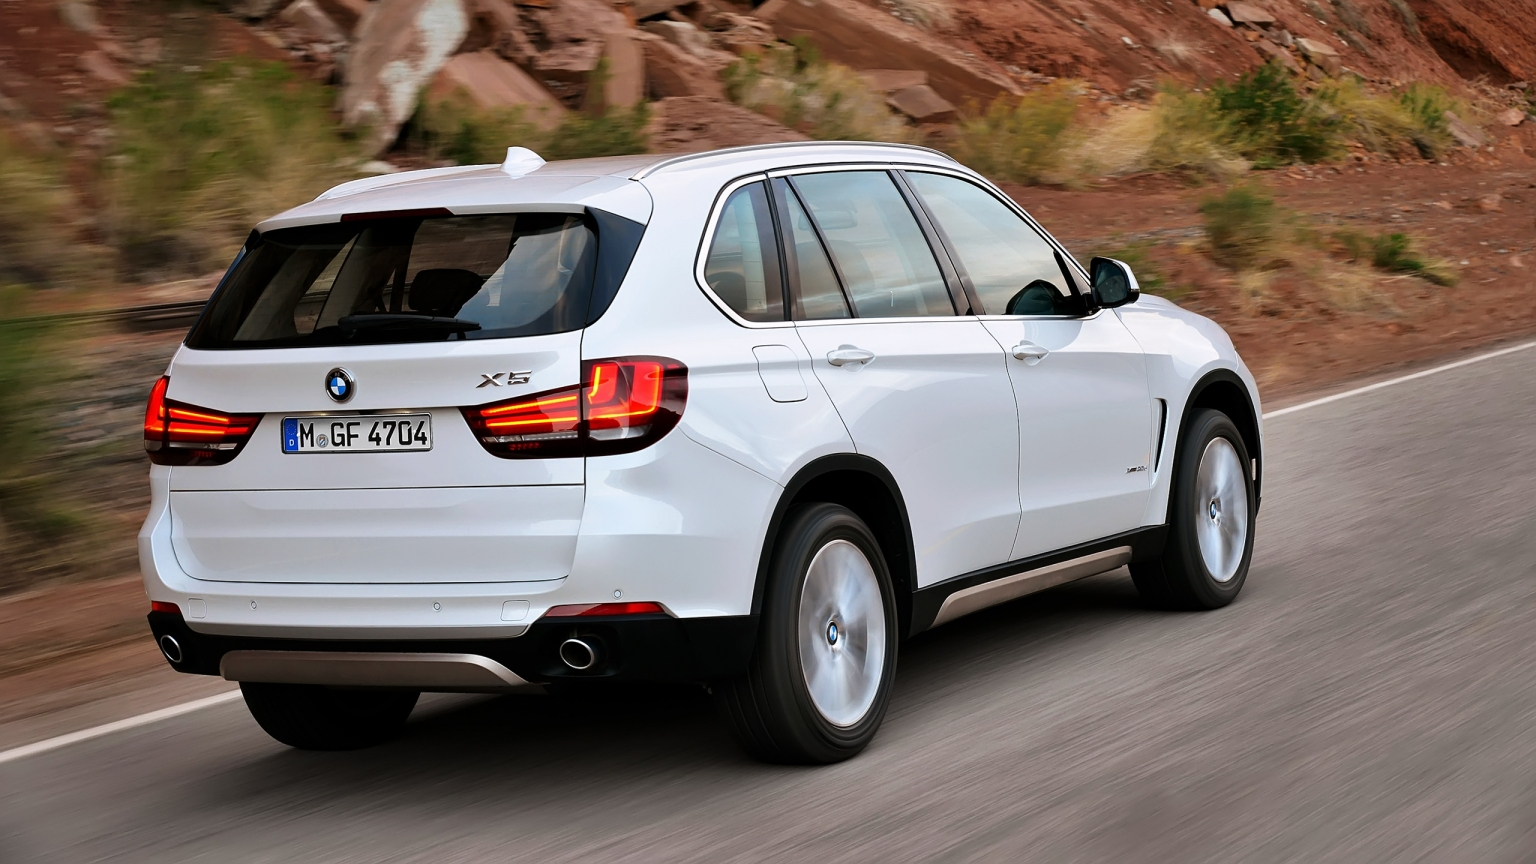 2014 BMW X5 Rear for 1536 x 864 HDTV resolution